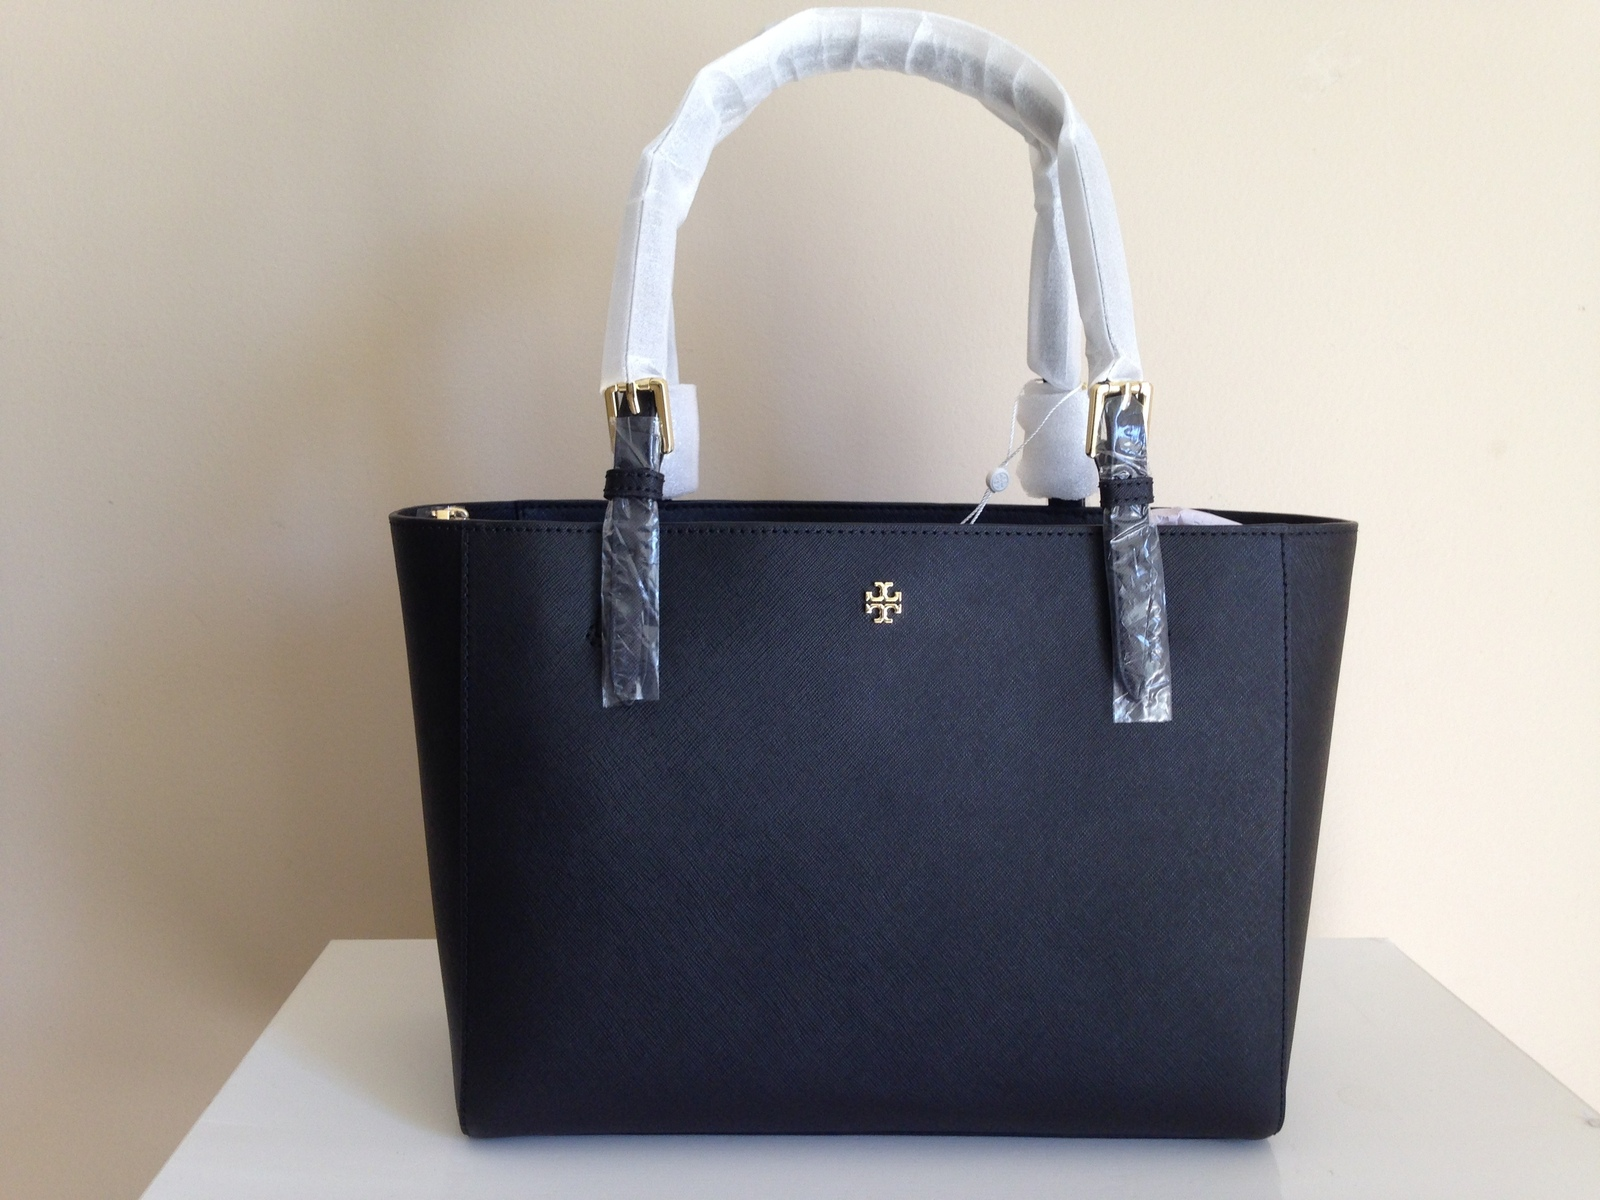 Tory Burch  Emerson Small Buckle black Leather Tote bag